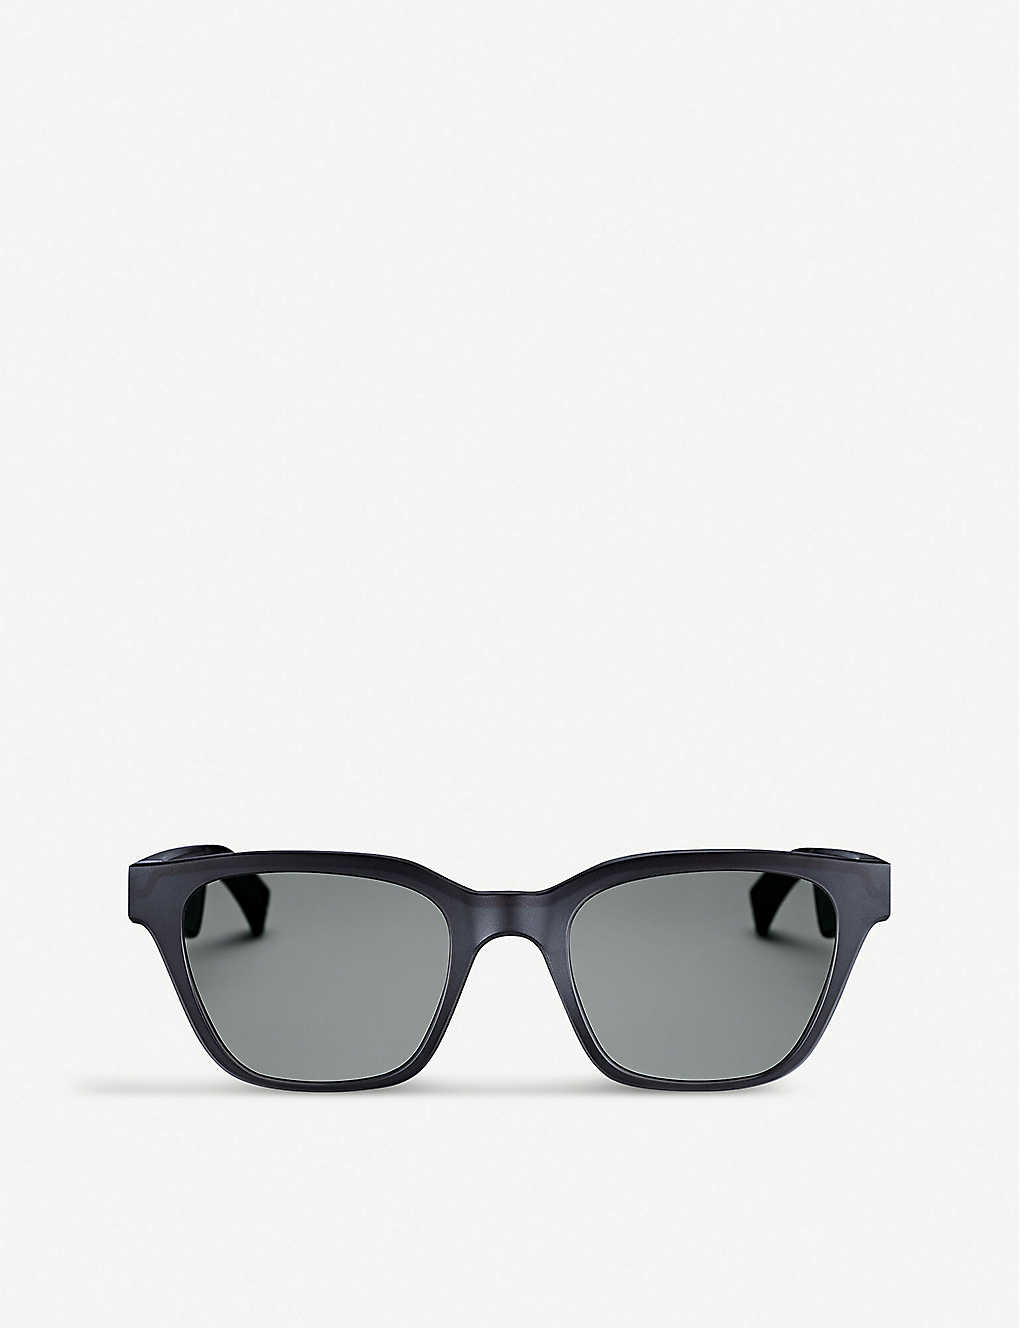 BOSE: Frames Alto audio sunglasses